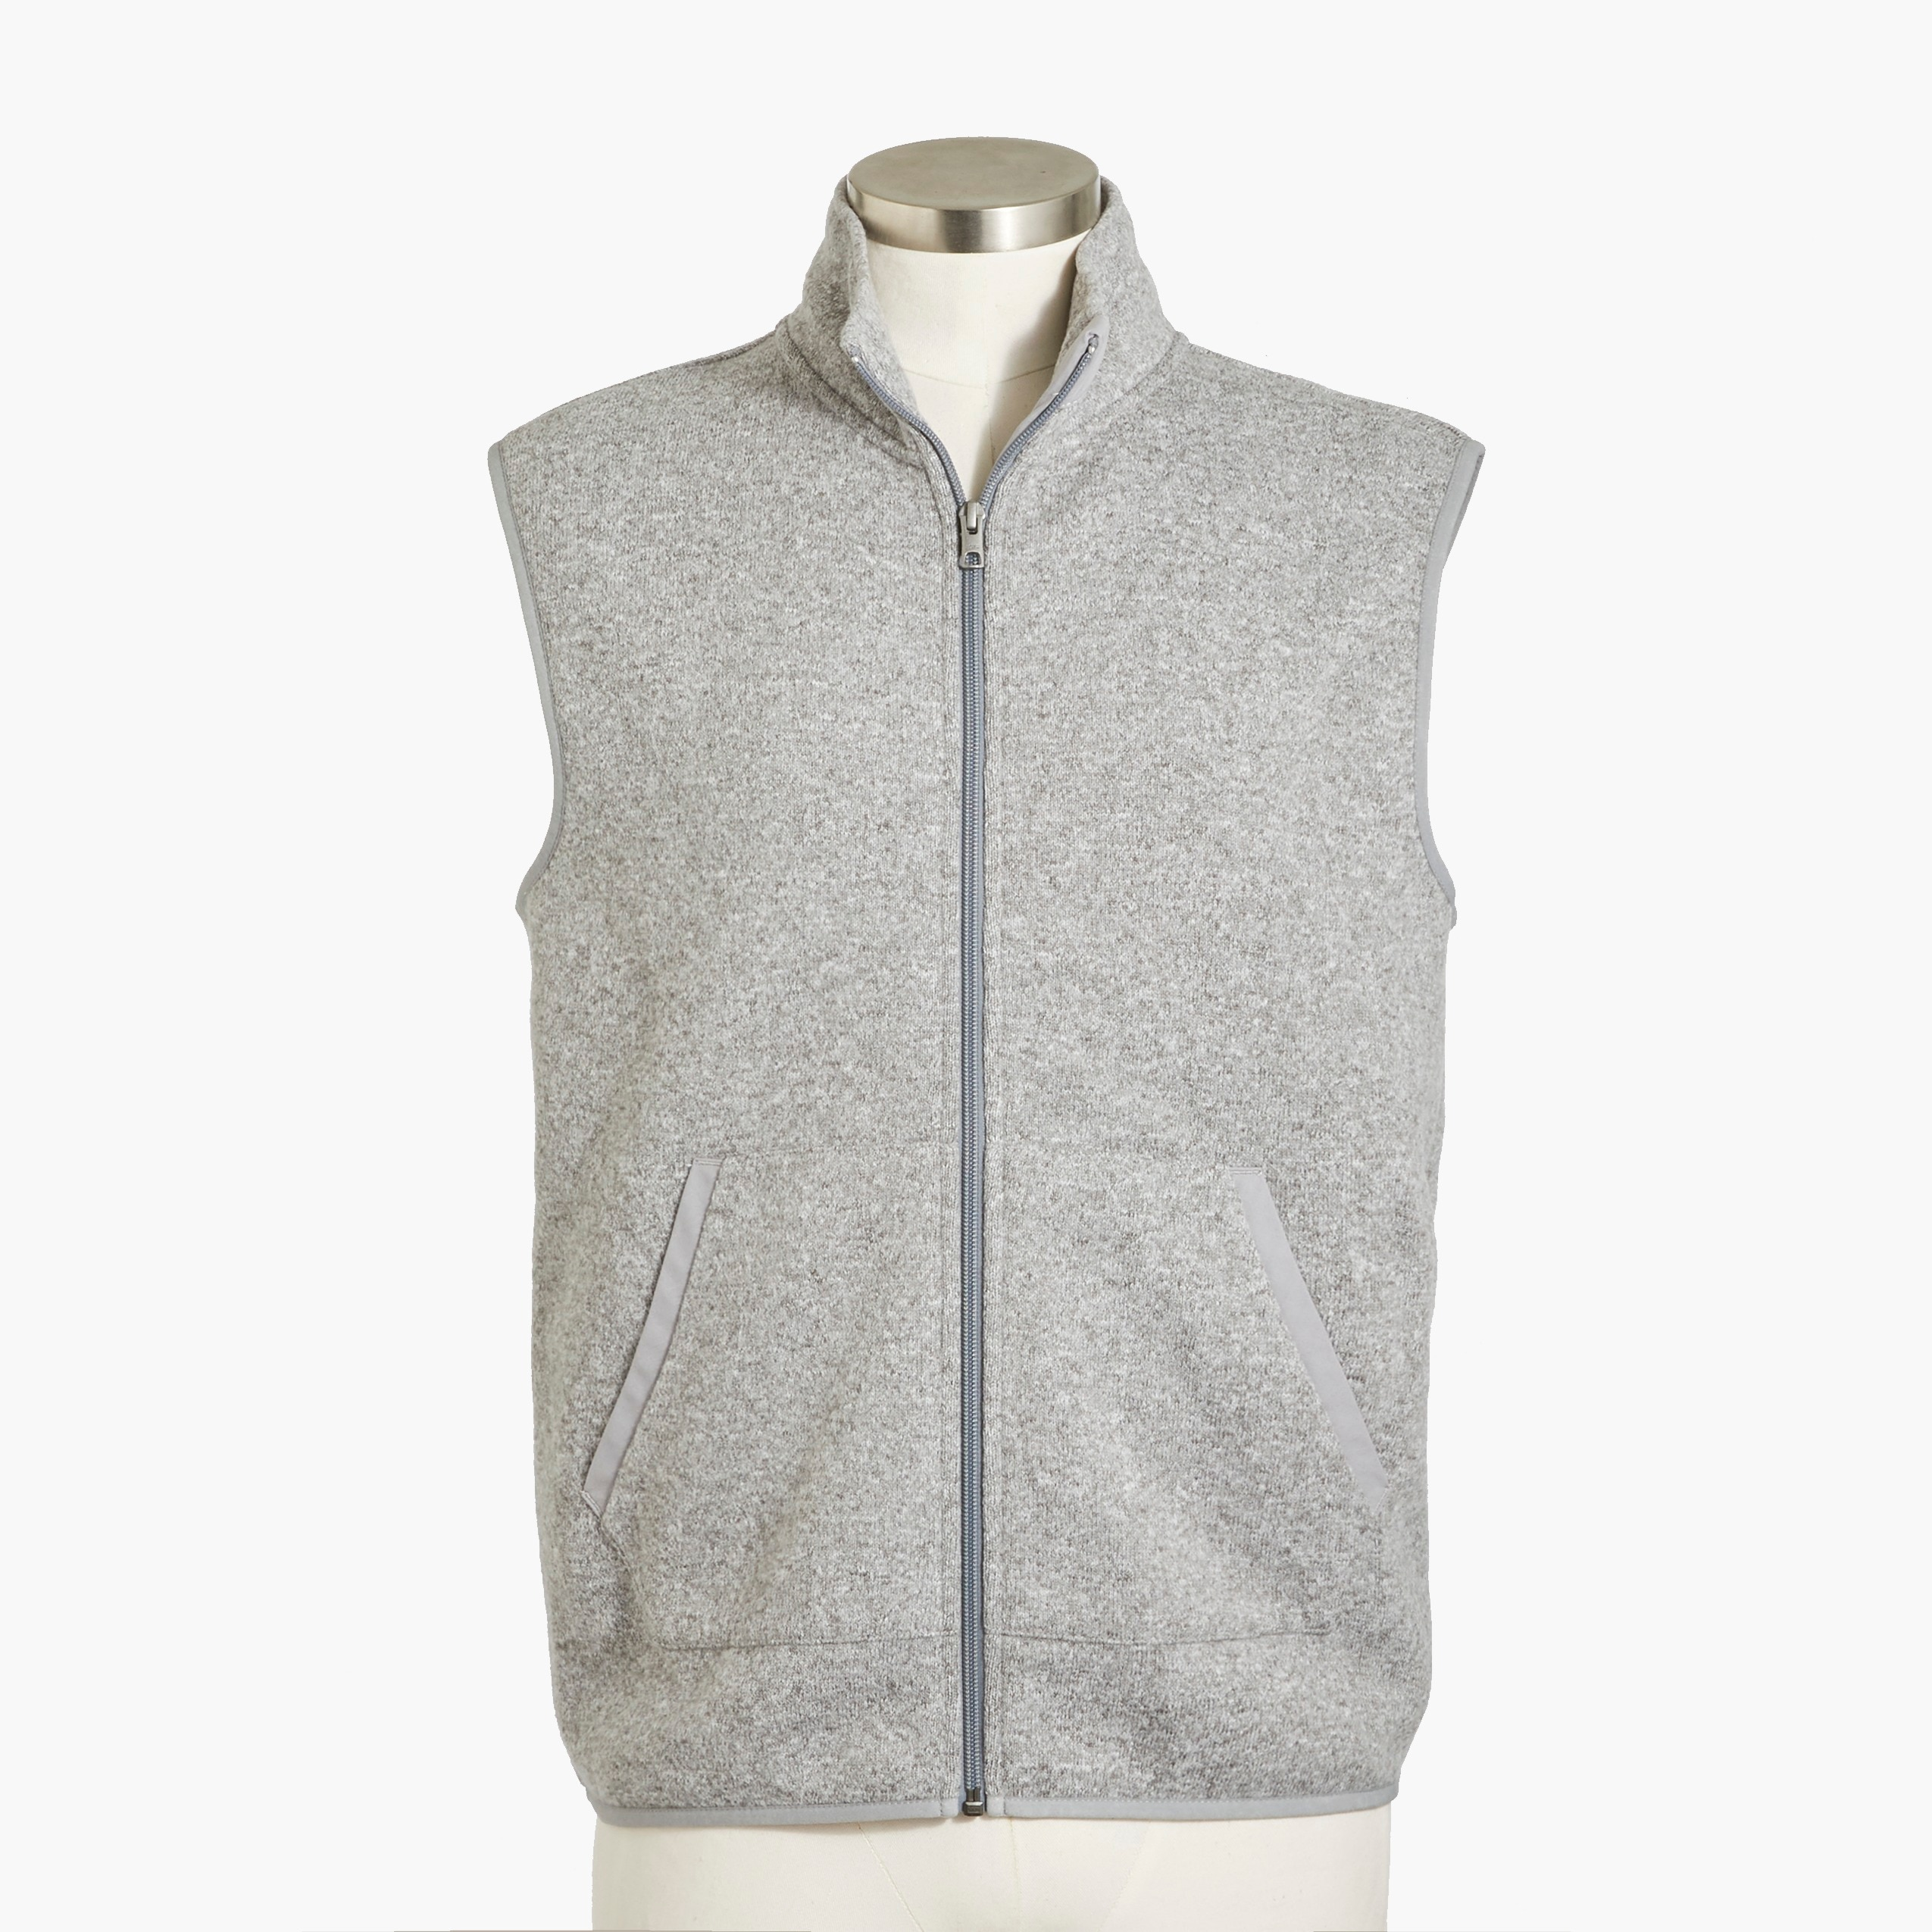 Image 2 for Sweater fleece vest